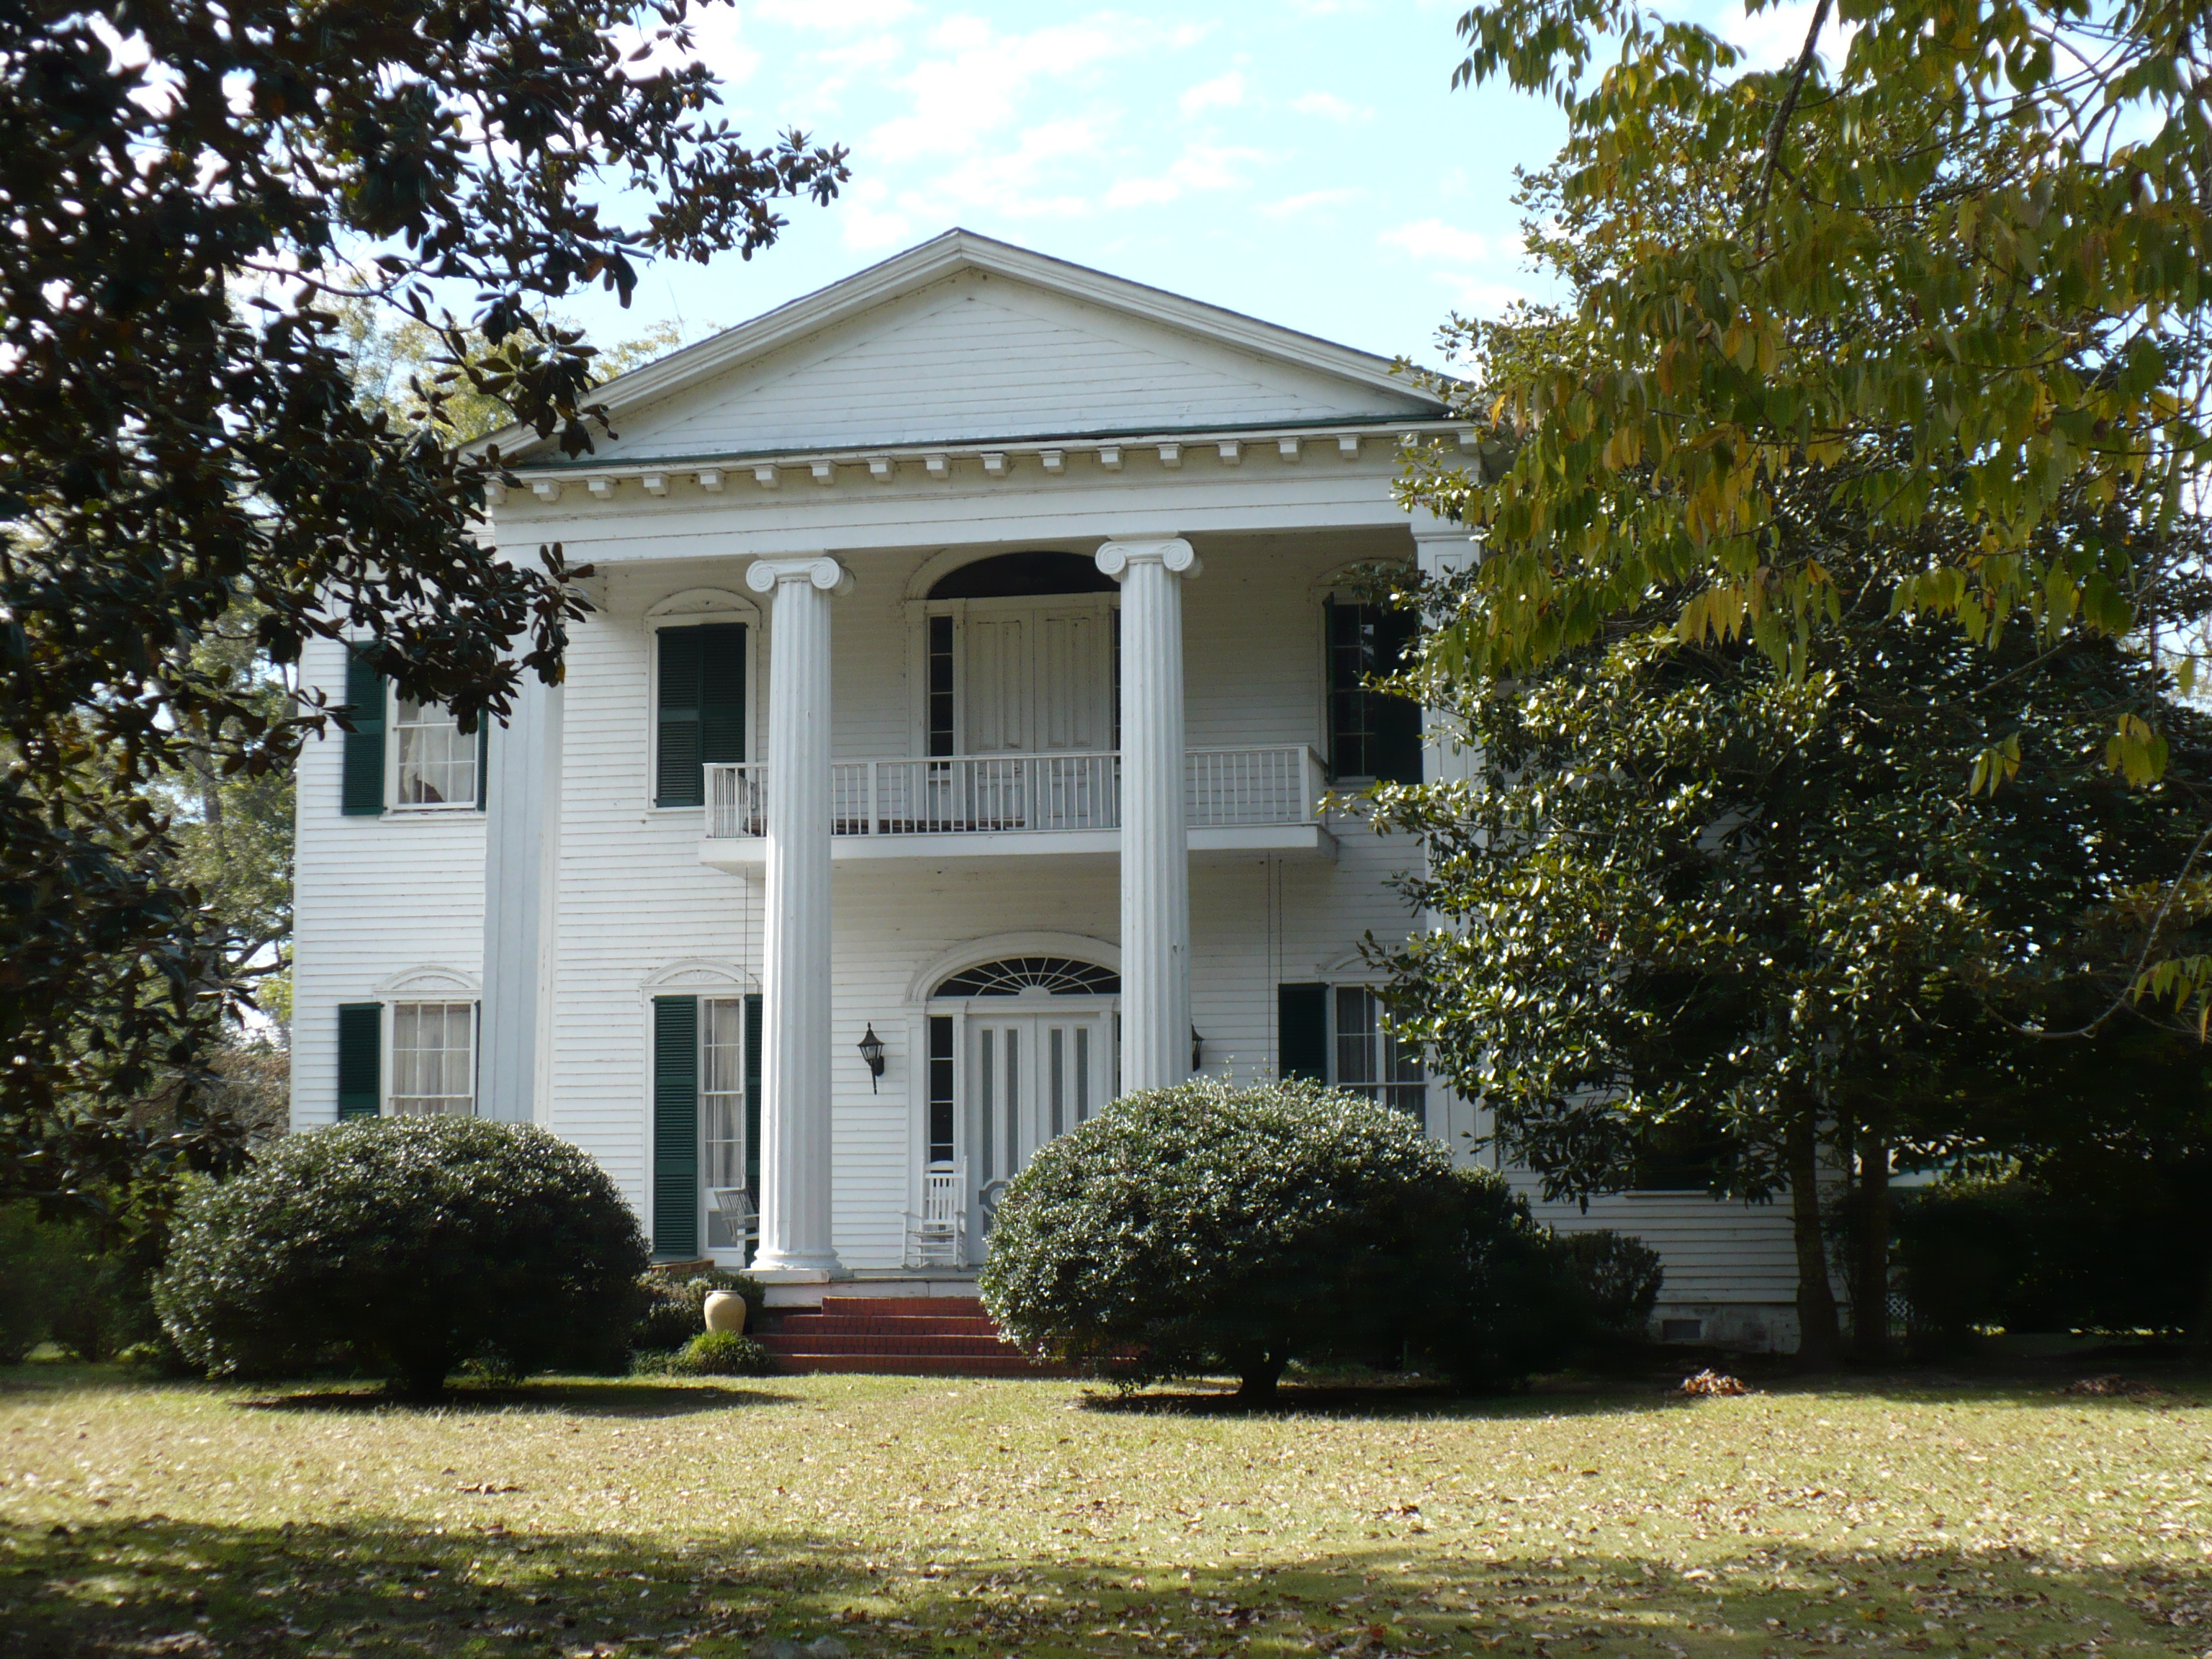 Liberty hall camden alabama wikiwand for Plantation house